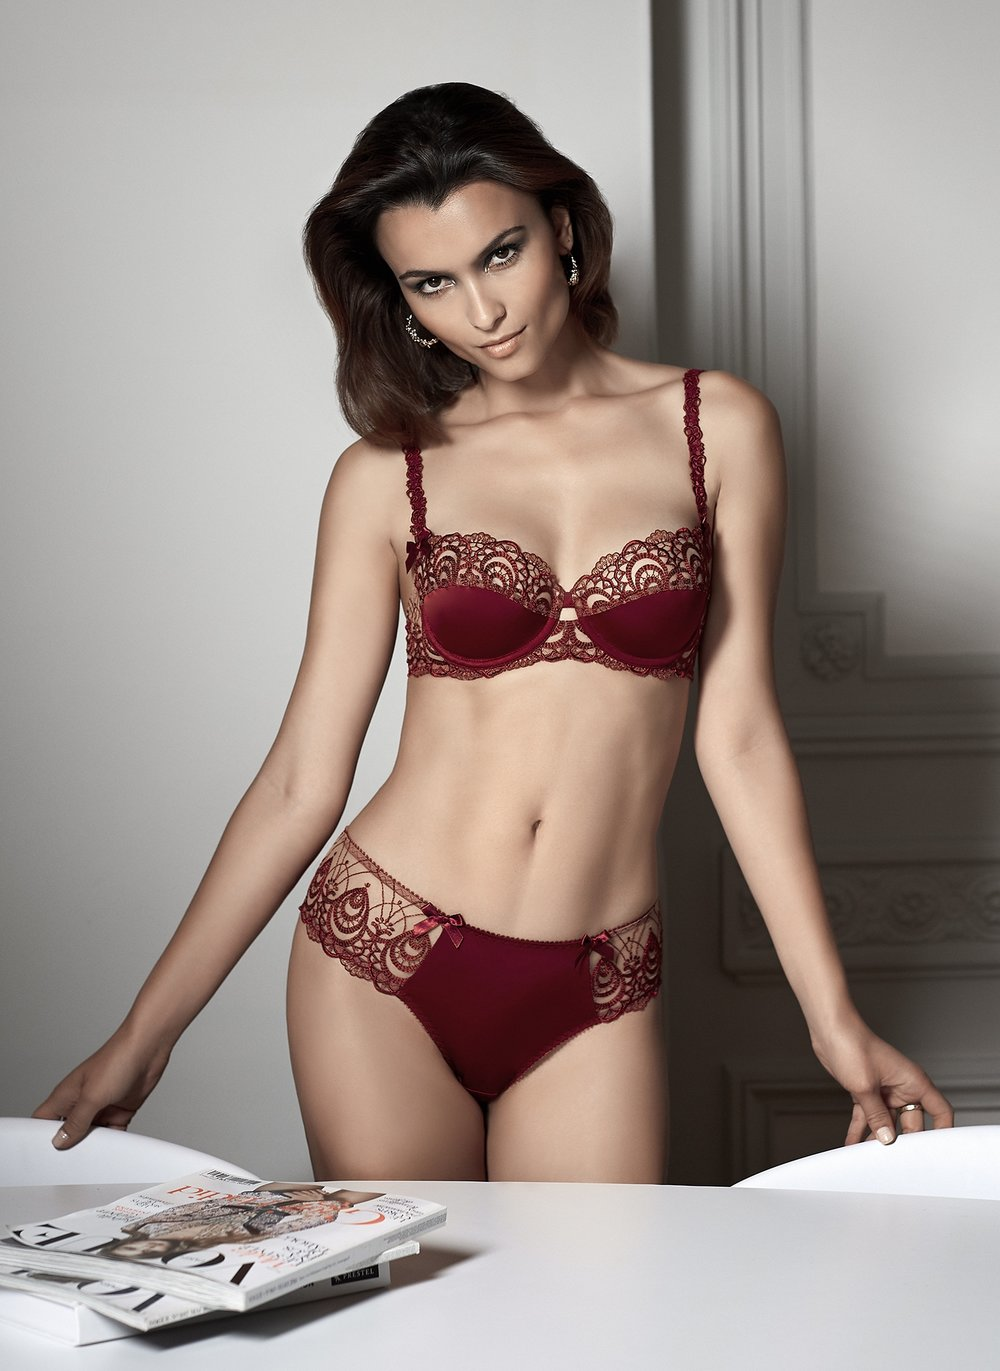 Ode a l'Amour   classic balconnet, sizes 85 to 95 b, c : $74        Shorty string, sizes 36 to 46 : $61